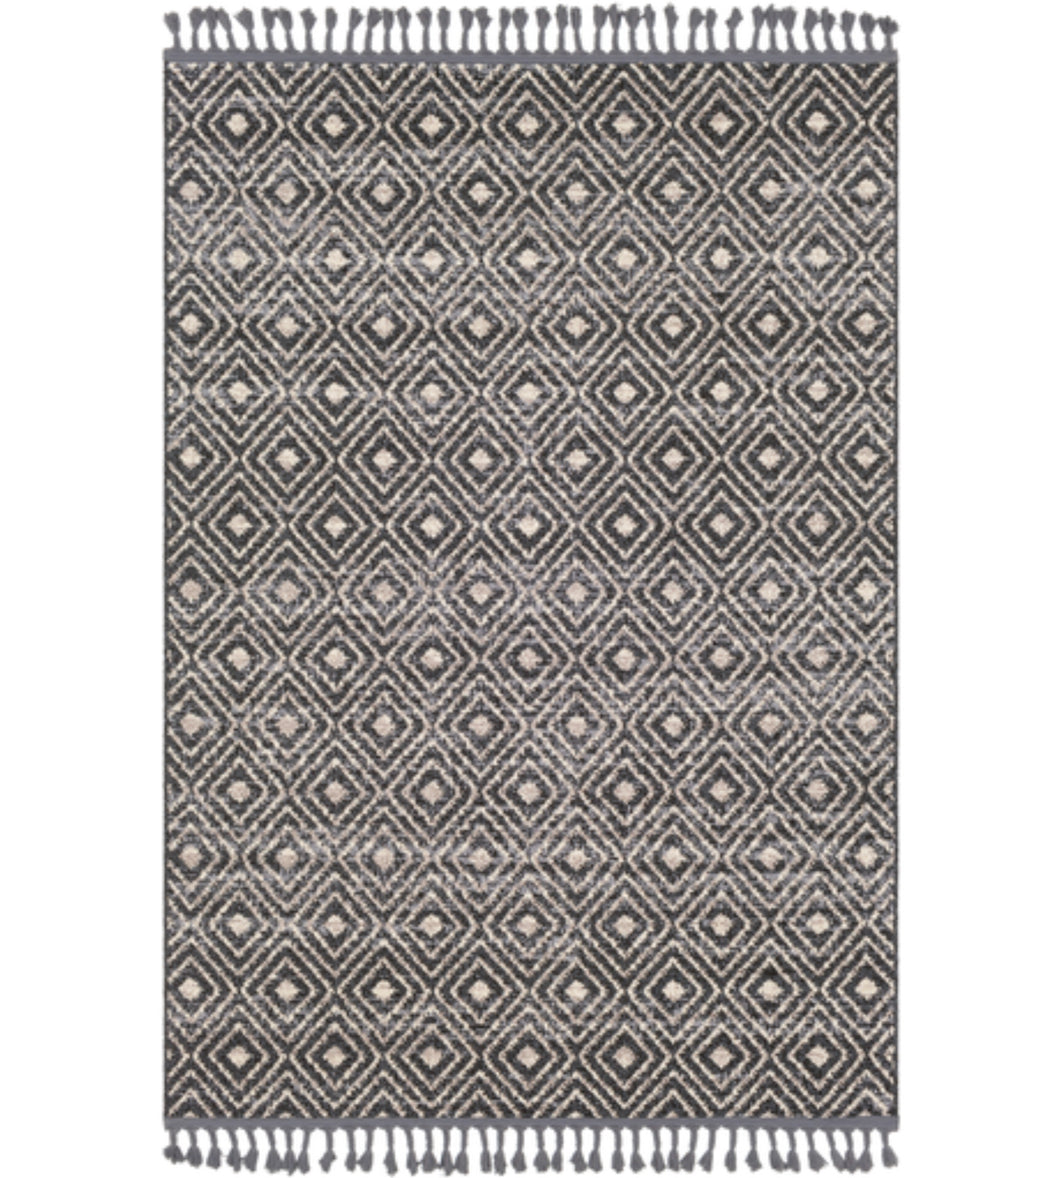 Rug Gray And Cream Diamond 5x7